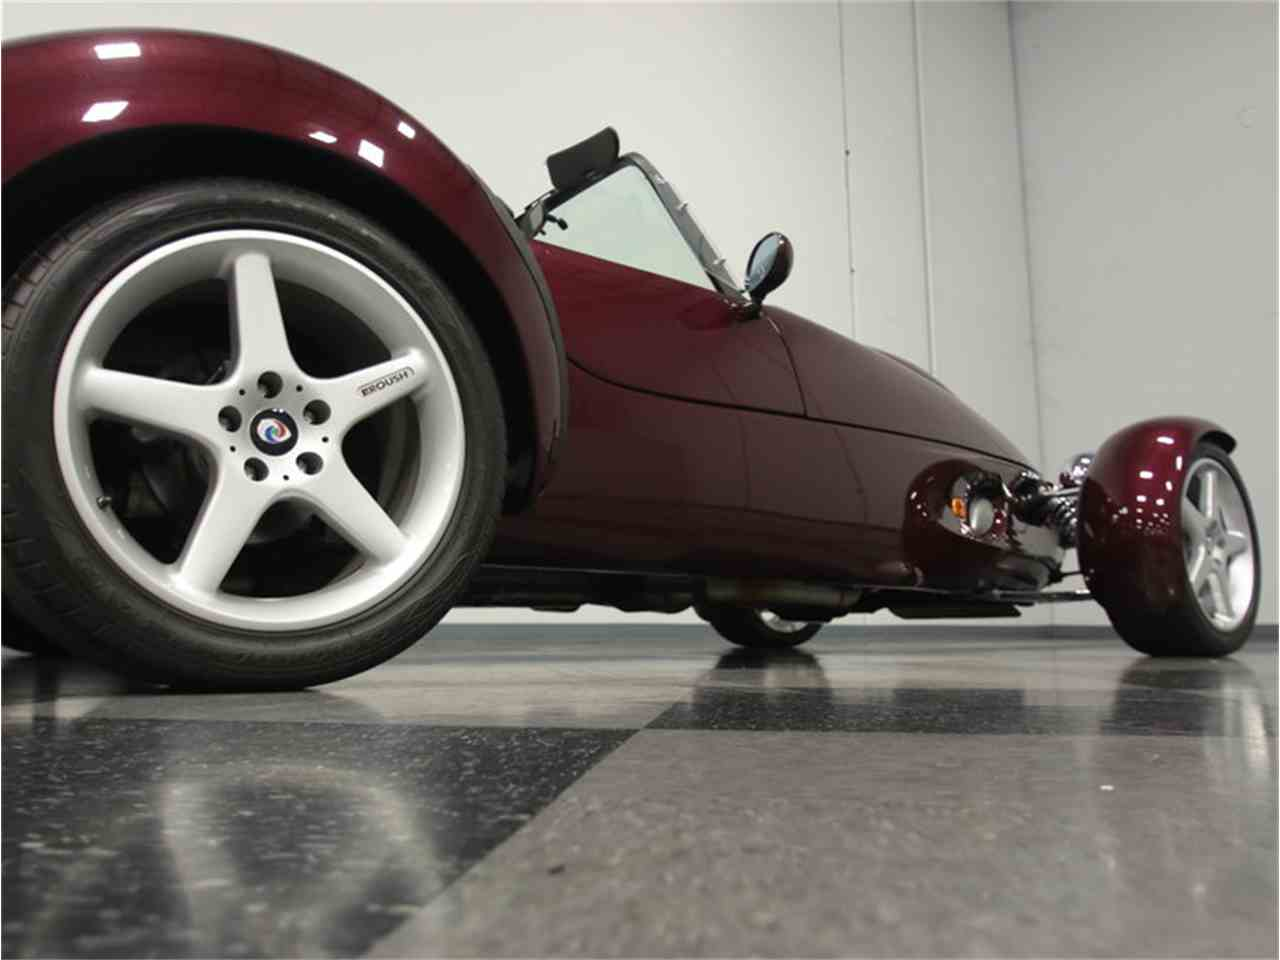 Large Picture of 1998 Panoz AIV Roadster Supercharged - $41,995.00 Offered by Streetside Classics - Atlanta - JPDH